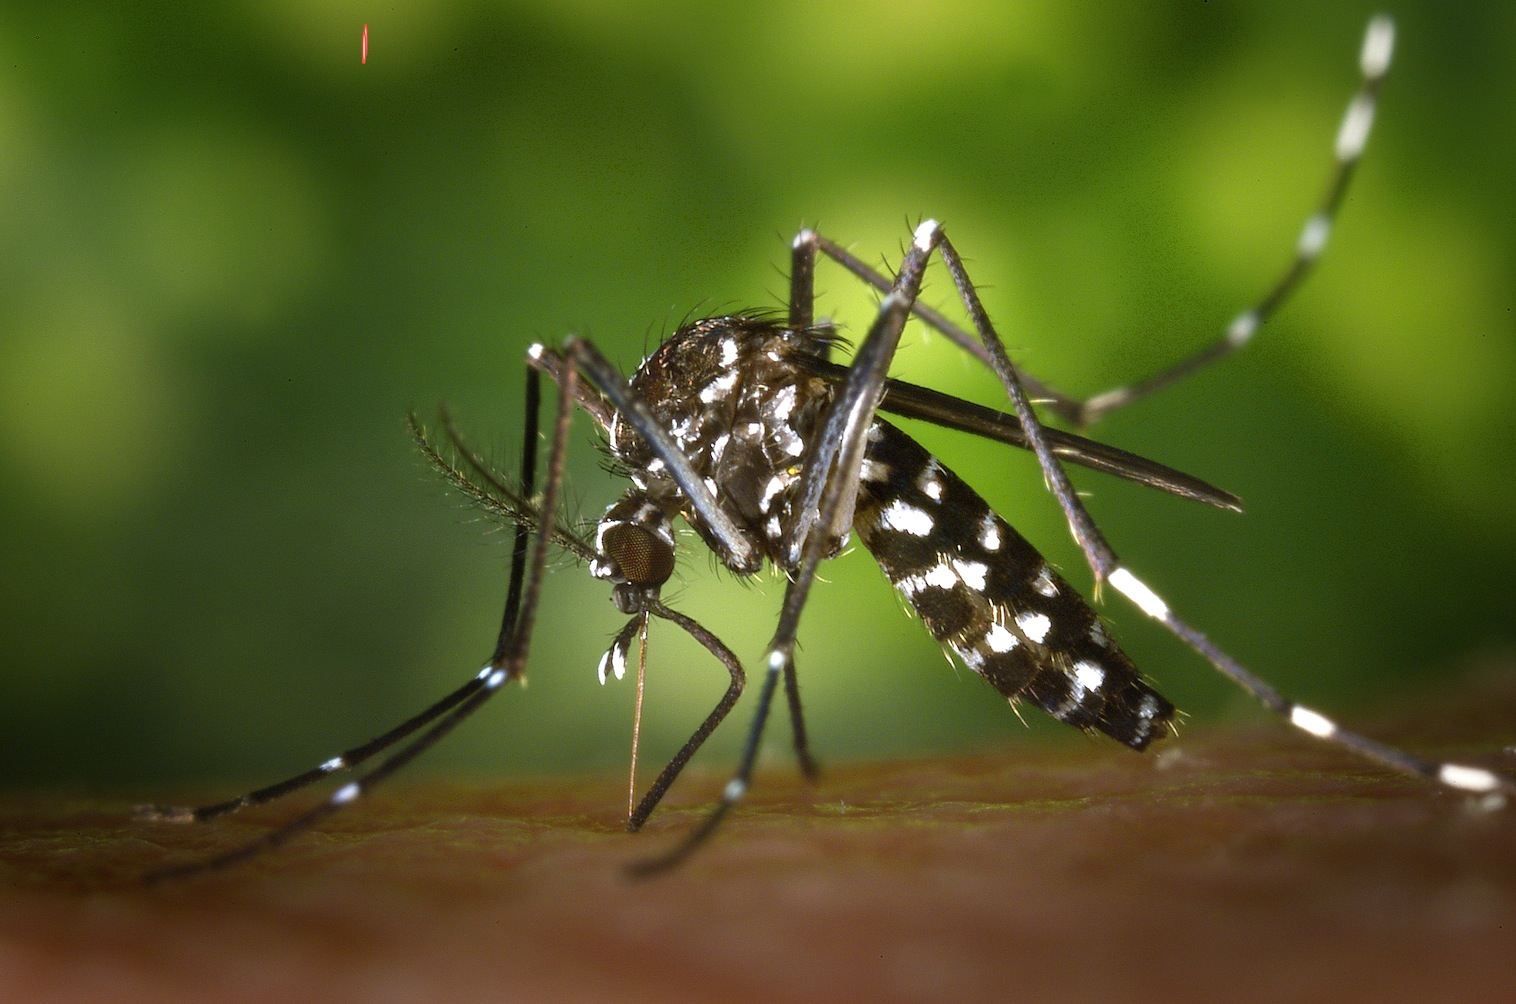 The aedes aegypti mosquito - source Mosi-guard